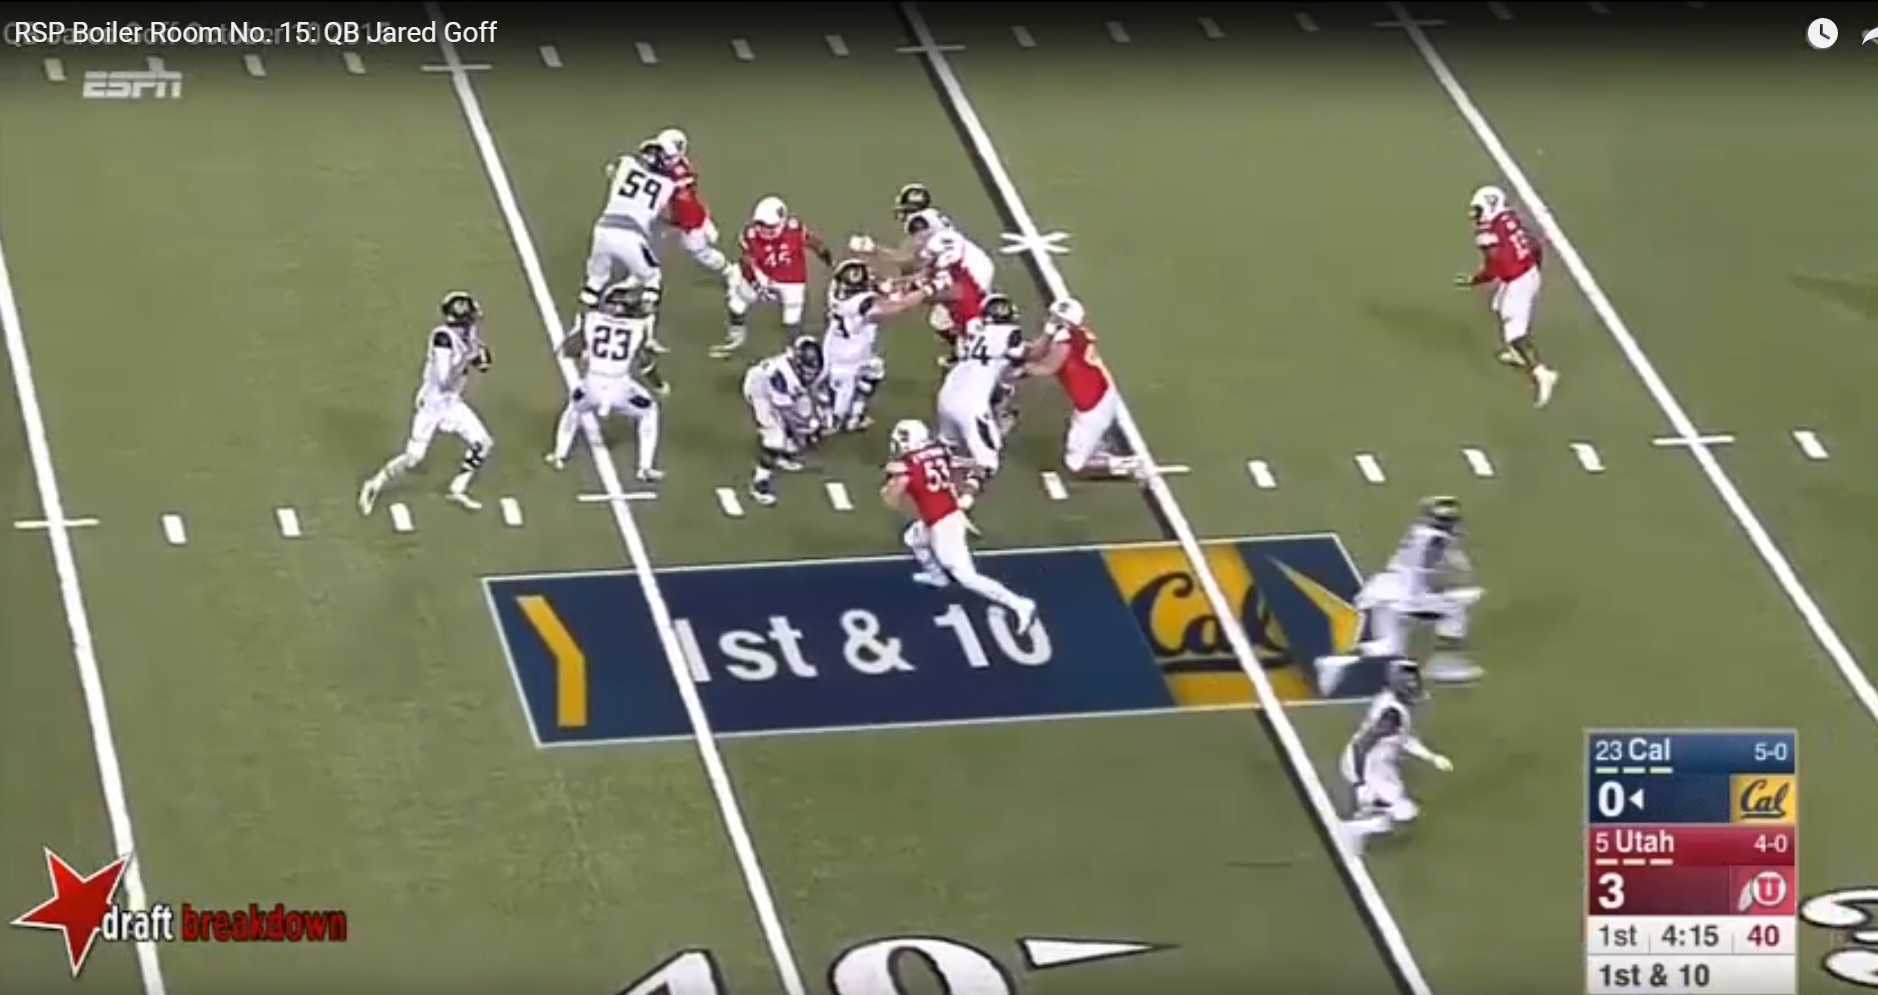 RSP Boiler Room No.15: Going Deep With QB Jared Goff